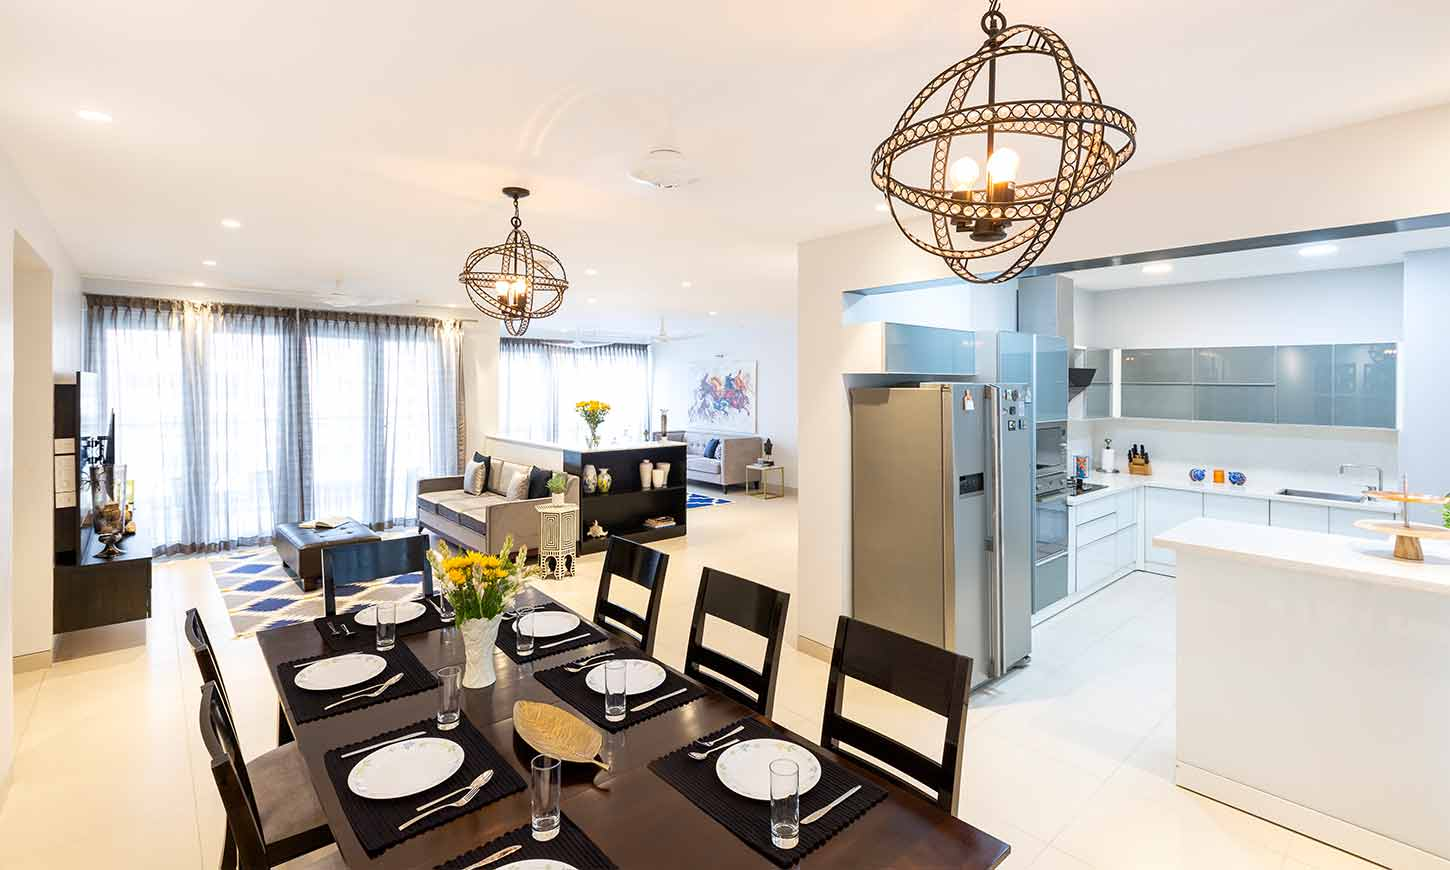 A dining area with kitchen designed by one of the best interior designing companies in bangalore